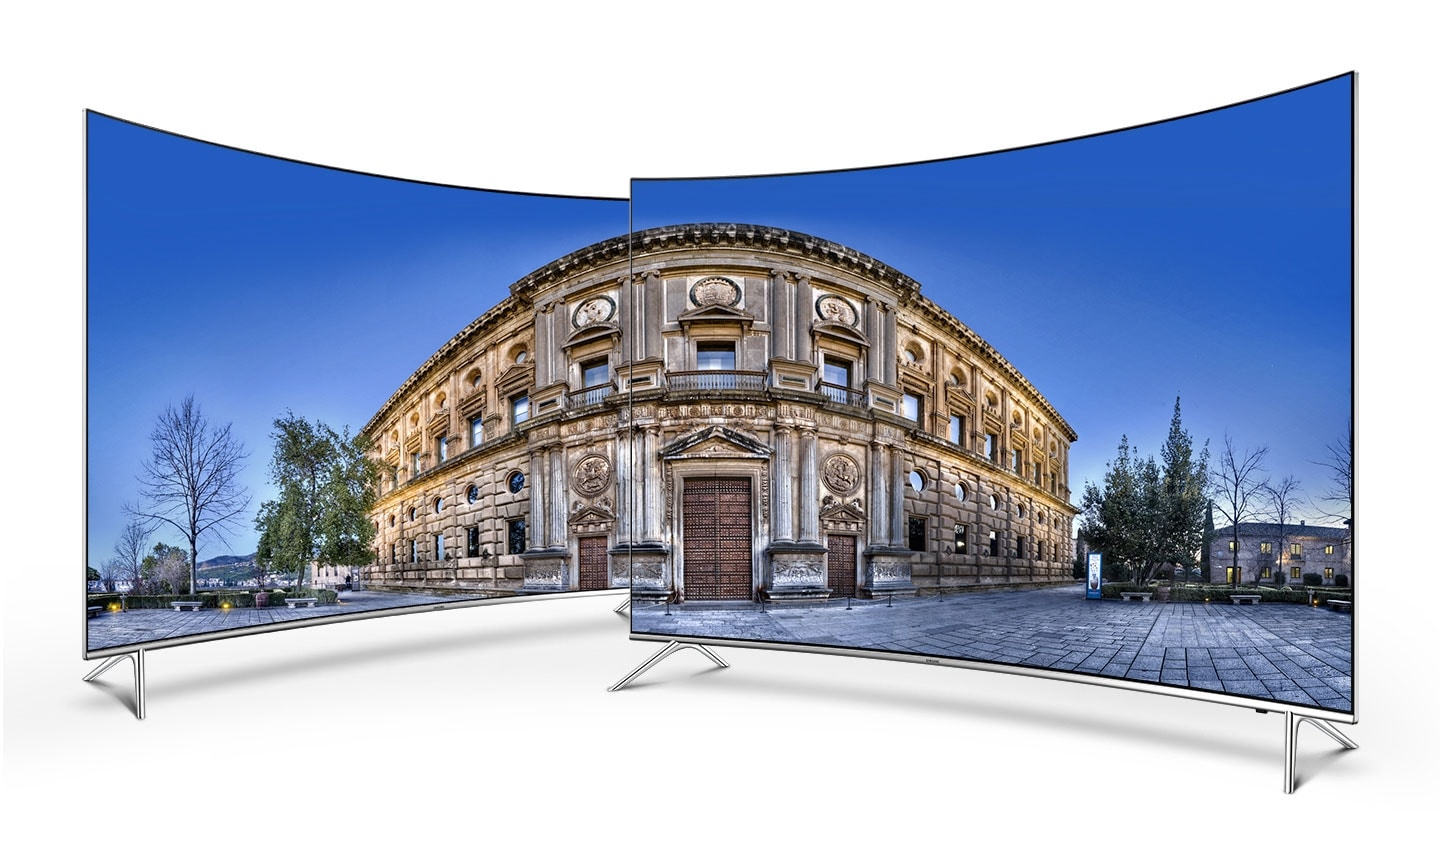 Two curved Samsung TV with beautiful aurora onscreen image